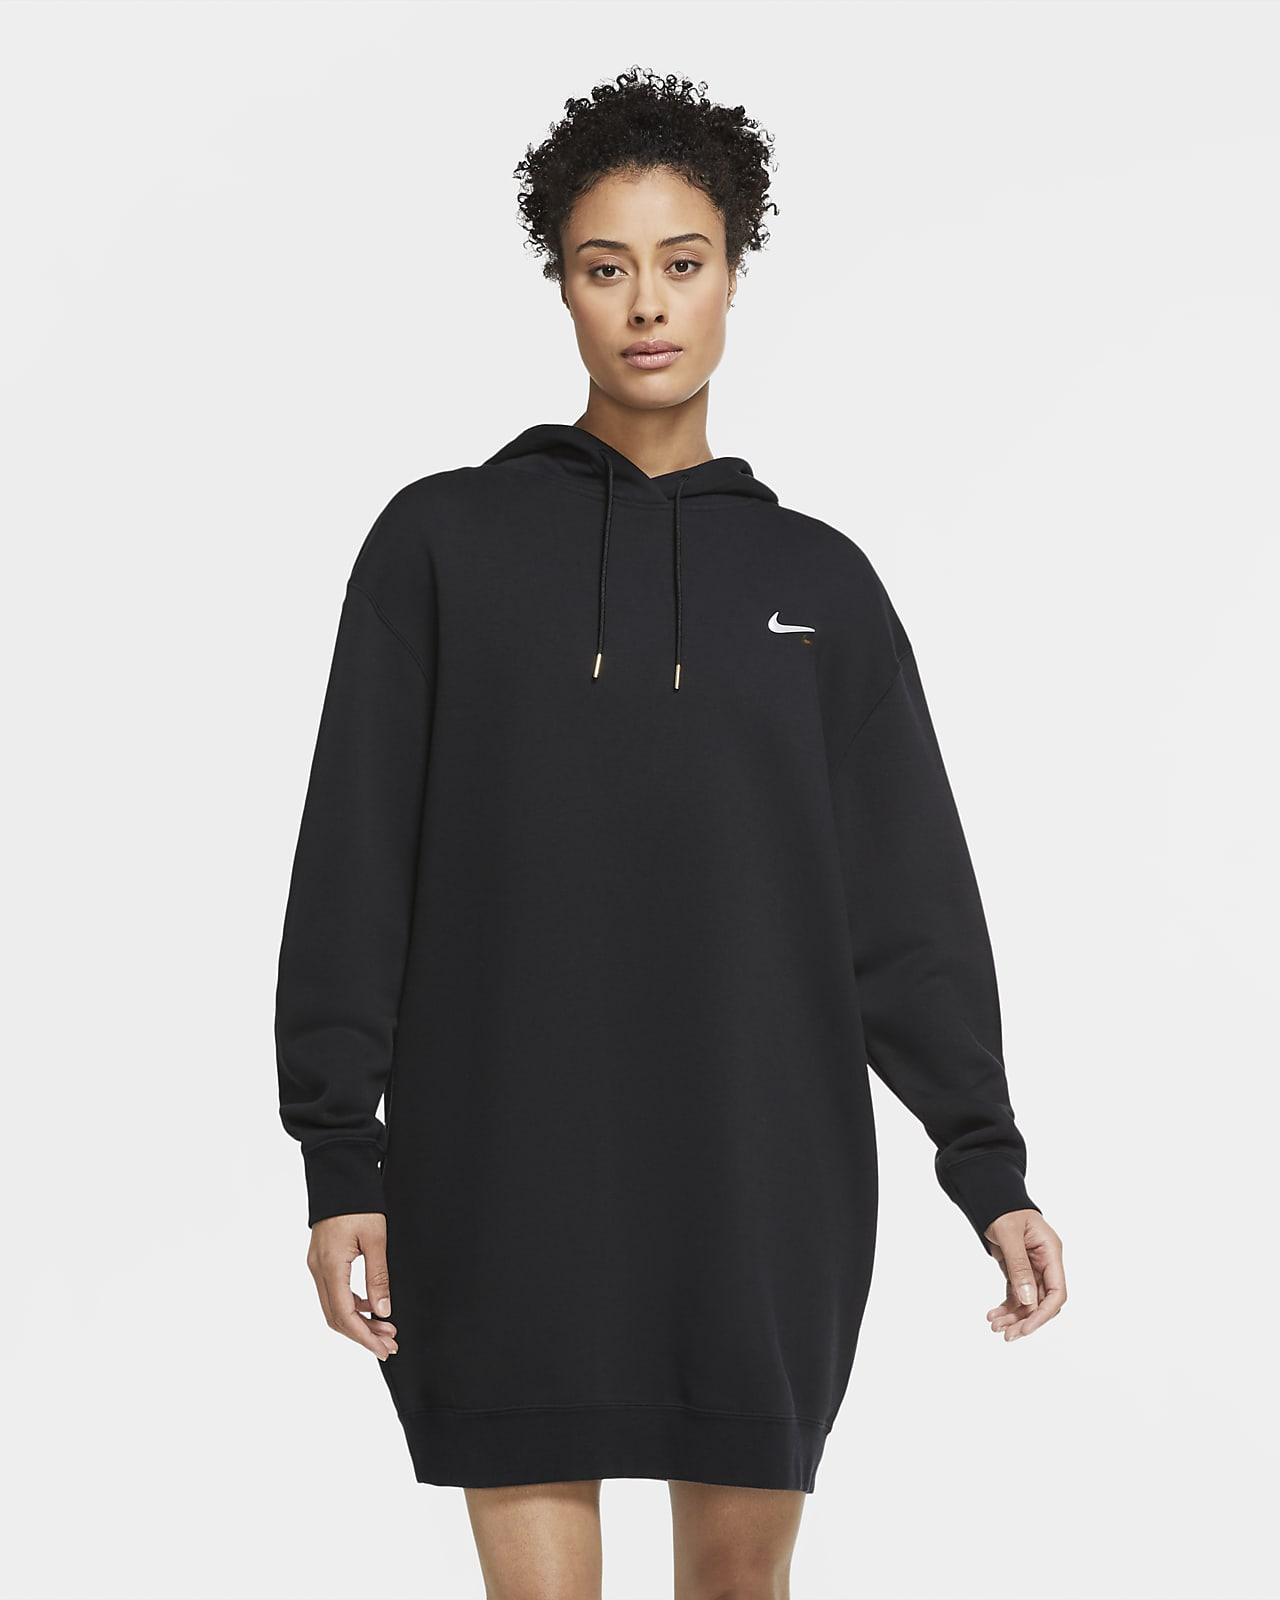 Nike Sportswear Women's Pullover Hoodie Dress